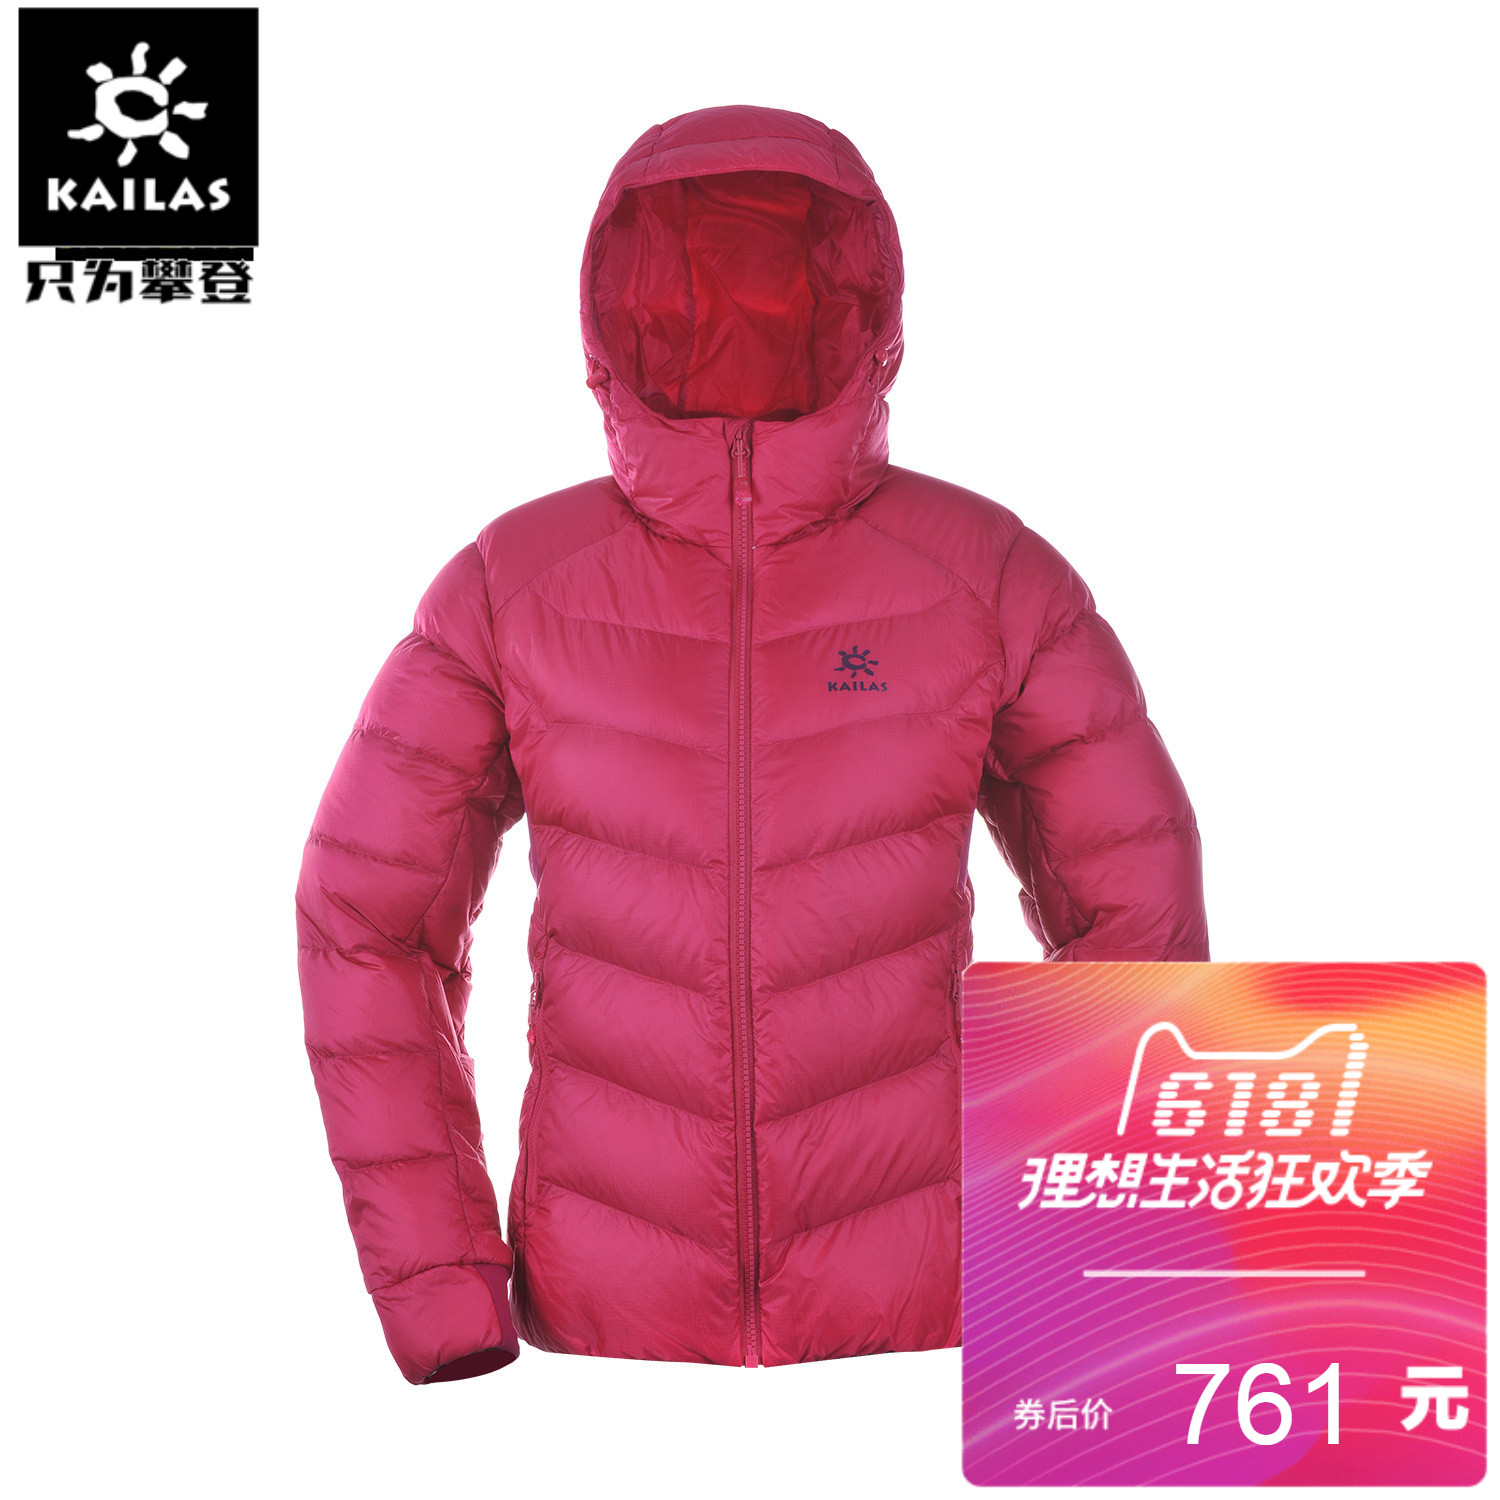 KAILAS / Kaile stone outdoor sports women's autumn and winter warm lightweight stretch down jacket KG320026